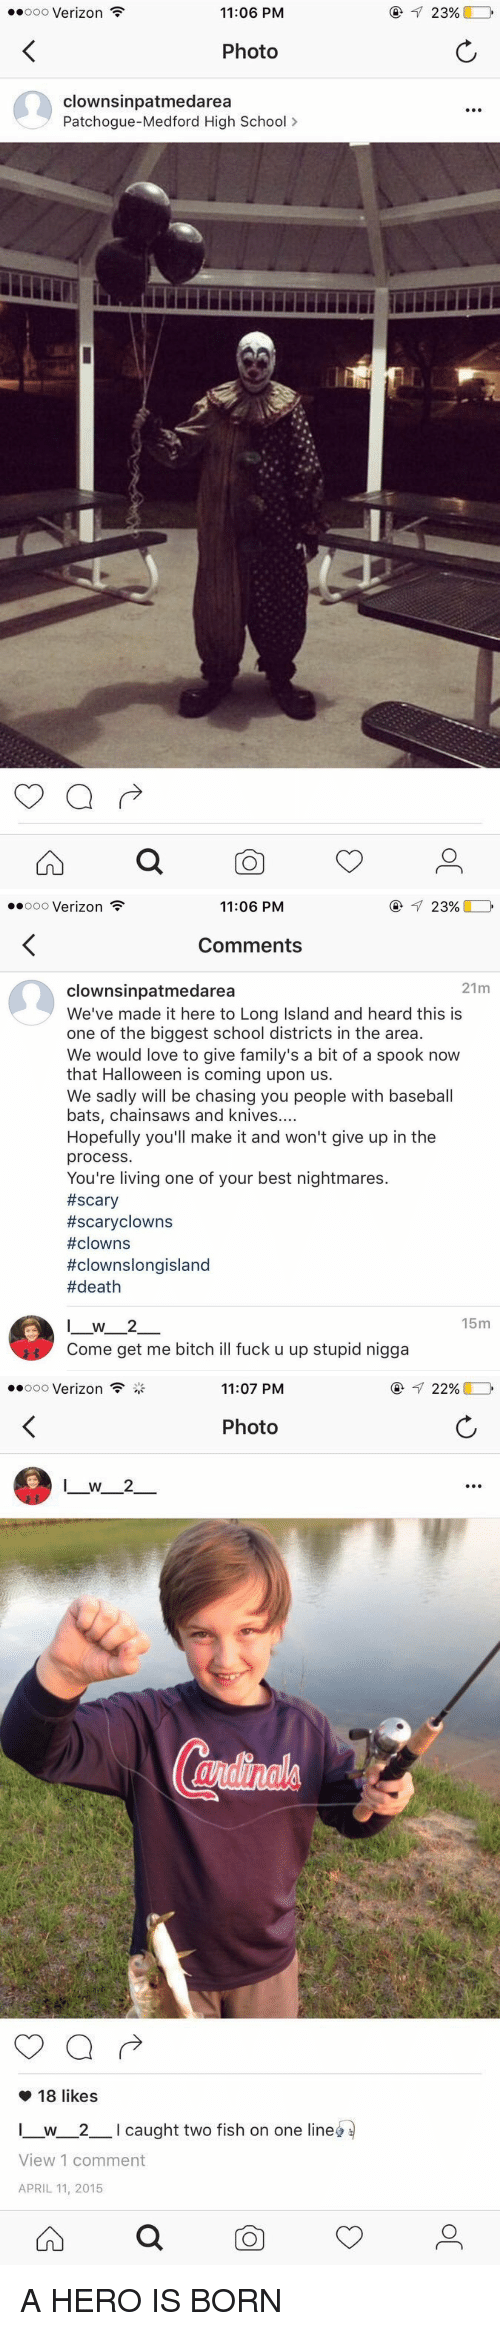 Baseball, Halloween, and Memes: ooooo Verizon  F  11:06 PM  Photo  clownsinpatmedarea  Patchogue-Medford High School  23%   23%  ooooo Verizon  11:06 PM  Comments  21m  clownsinpatmedarea  We've made it here to Long lsland and heard this is  one of the biggest school districts in the area.  We would love to give family's a bit of a spook now  that Halloween is coming upon us.  We sadly will be chasing you people with baseball  bats, chainsaws and knives  Hopefully you'll make it and won't give up in the  process.  You're living one of your best nightmares.  #scary  #scary clowns  #clowns  #clownslongisland  death  15m  I W 2  Come get me bitch ill fuck u up stupid nigga   oooooo Verizon  11:07 PM  Photo  18 likes  L w 2 l caught two fish on one line  View 1 comment  APRIL 11, 2015  22% A HERO IS BORN